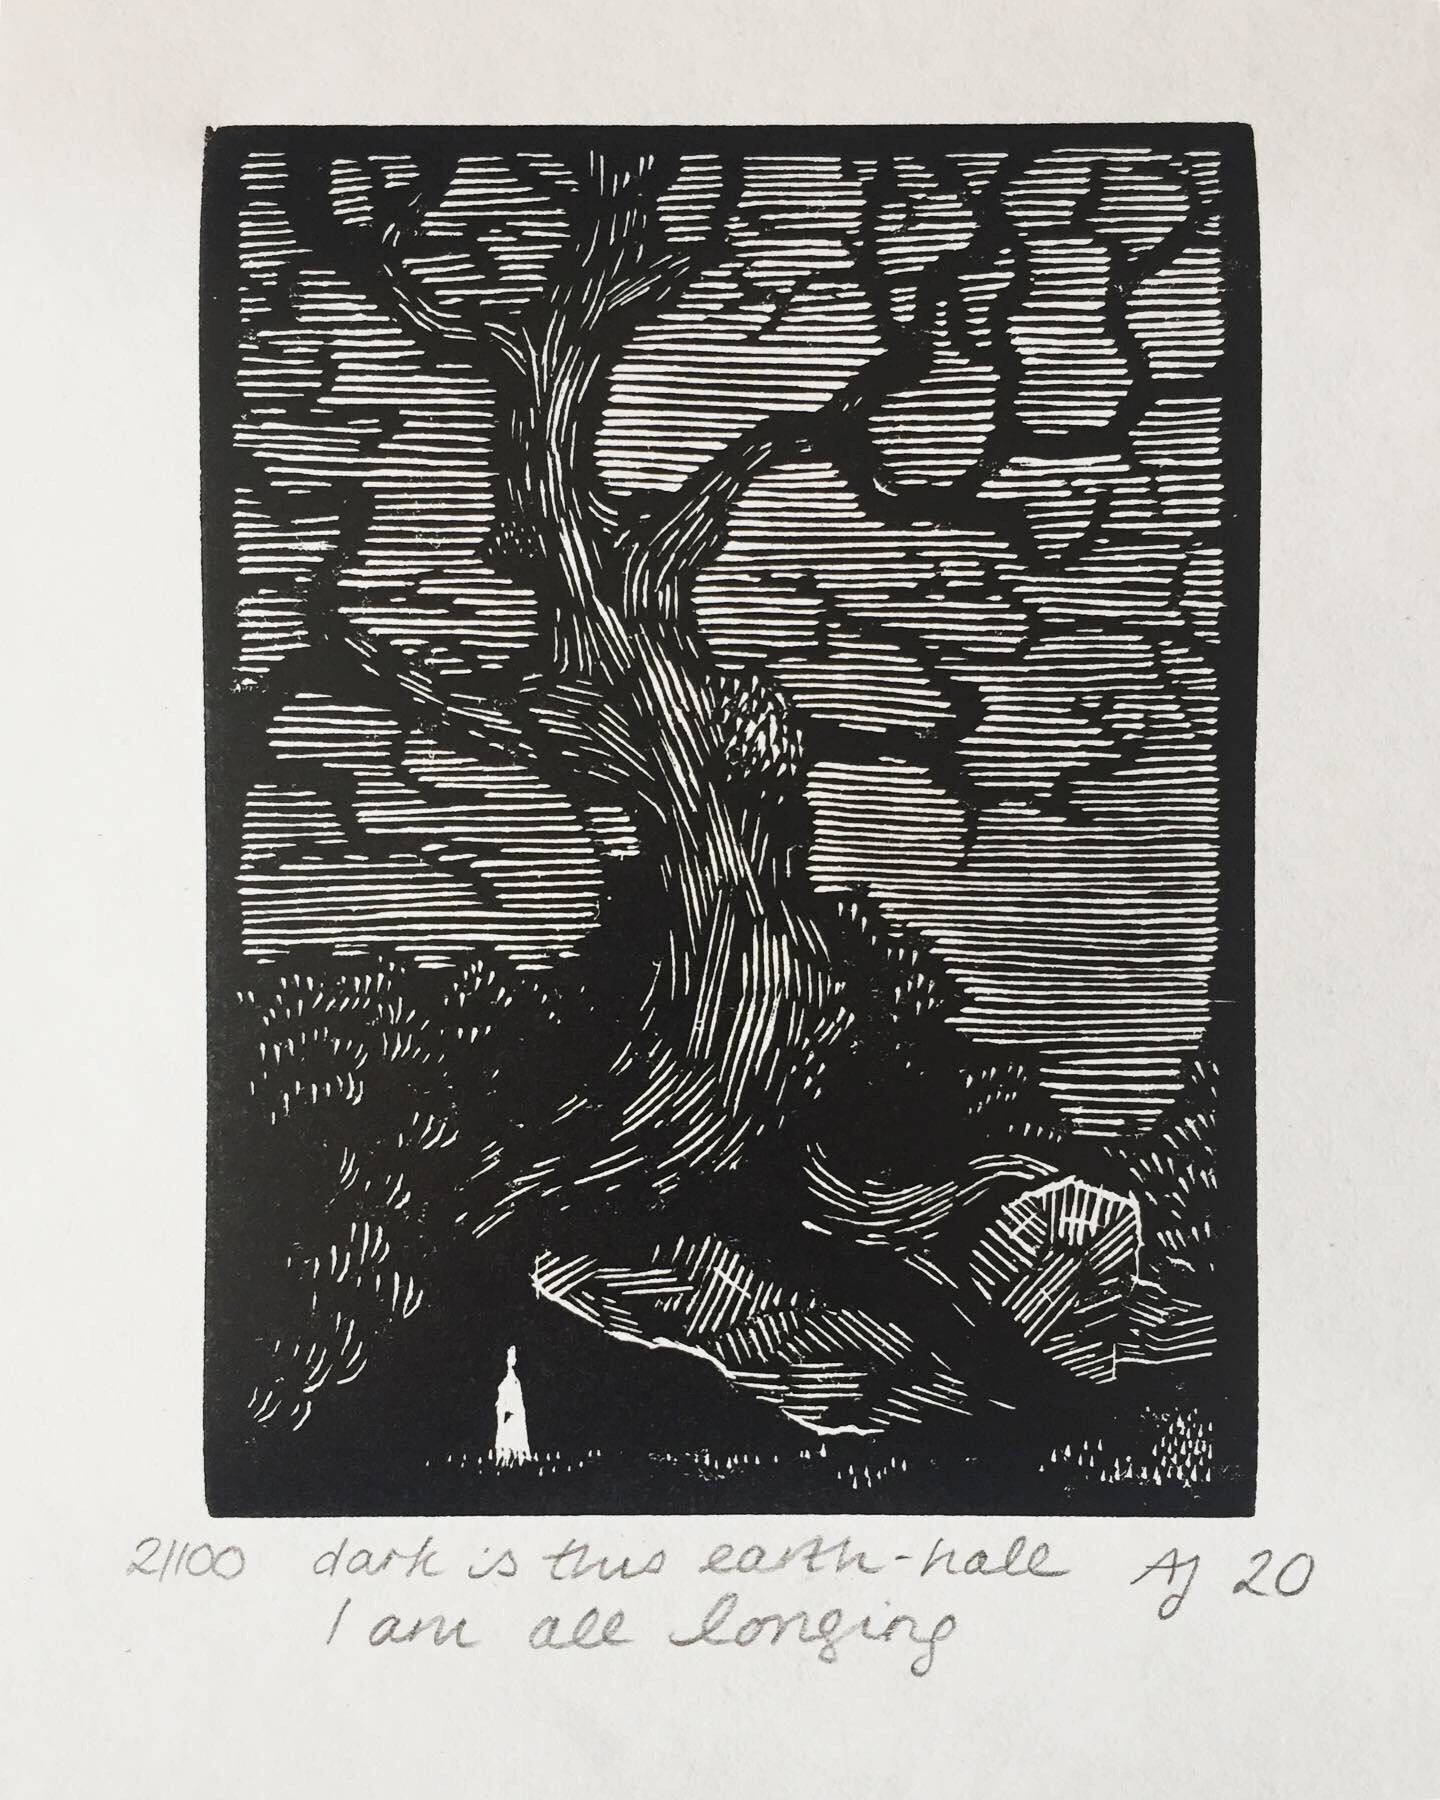 Wood engraving of a tree